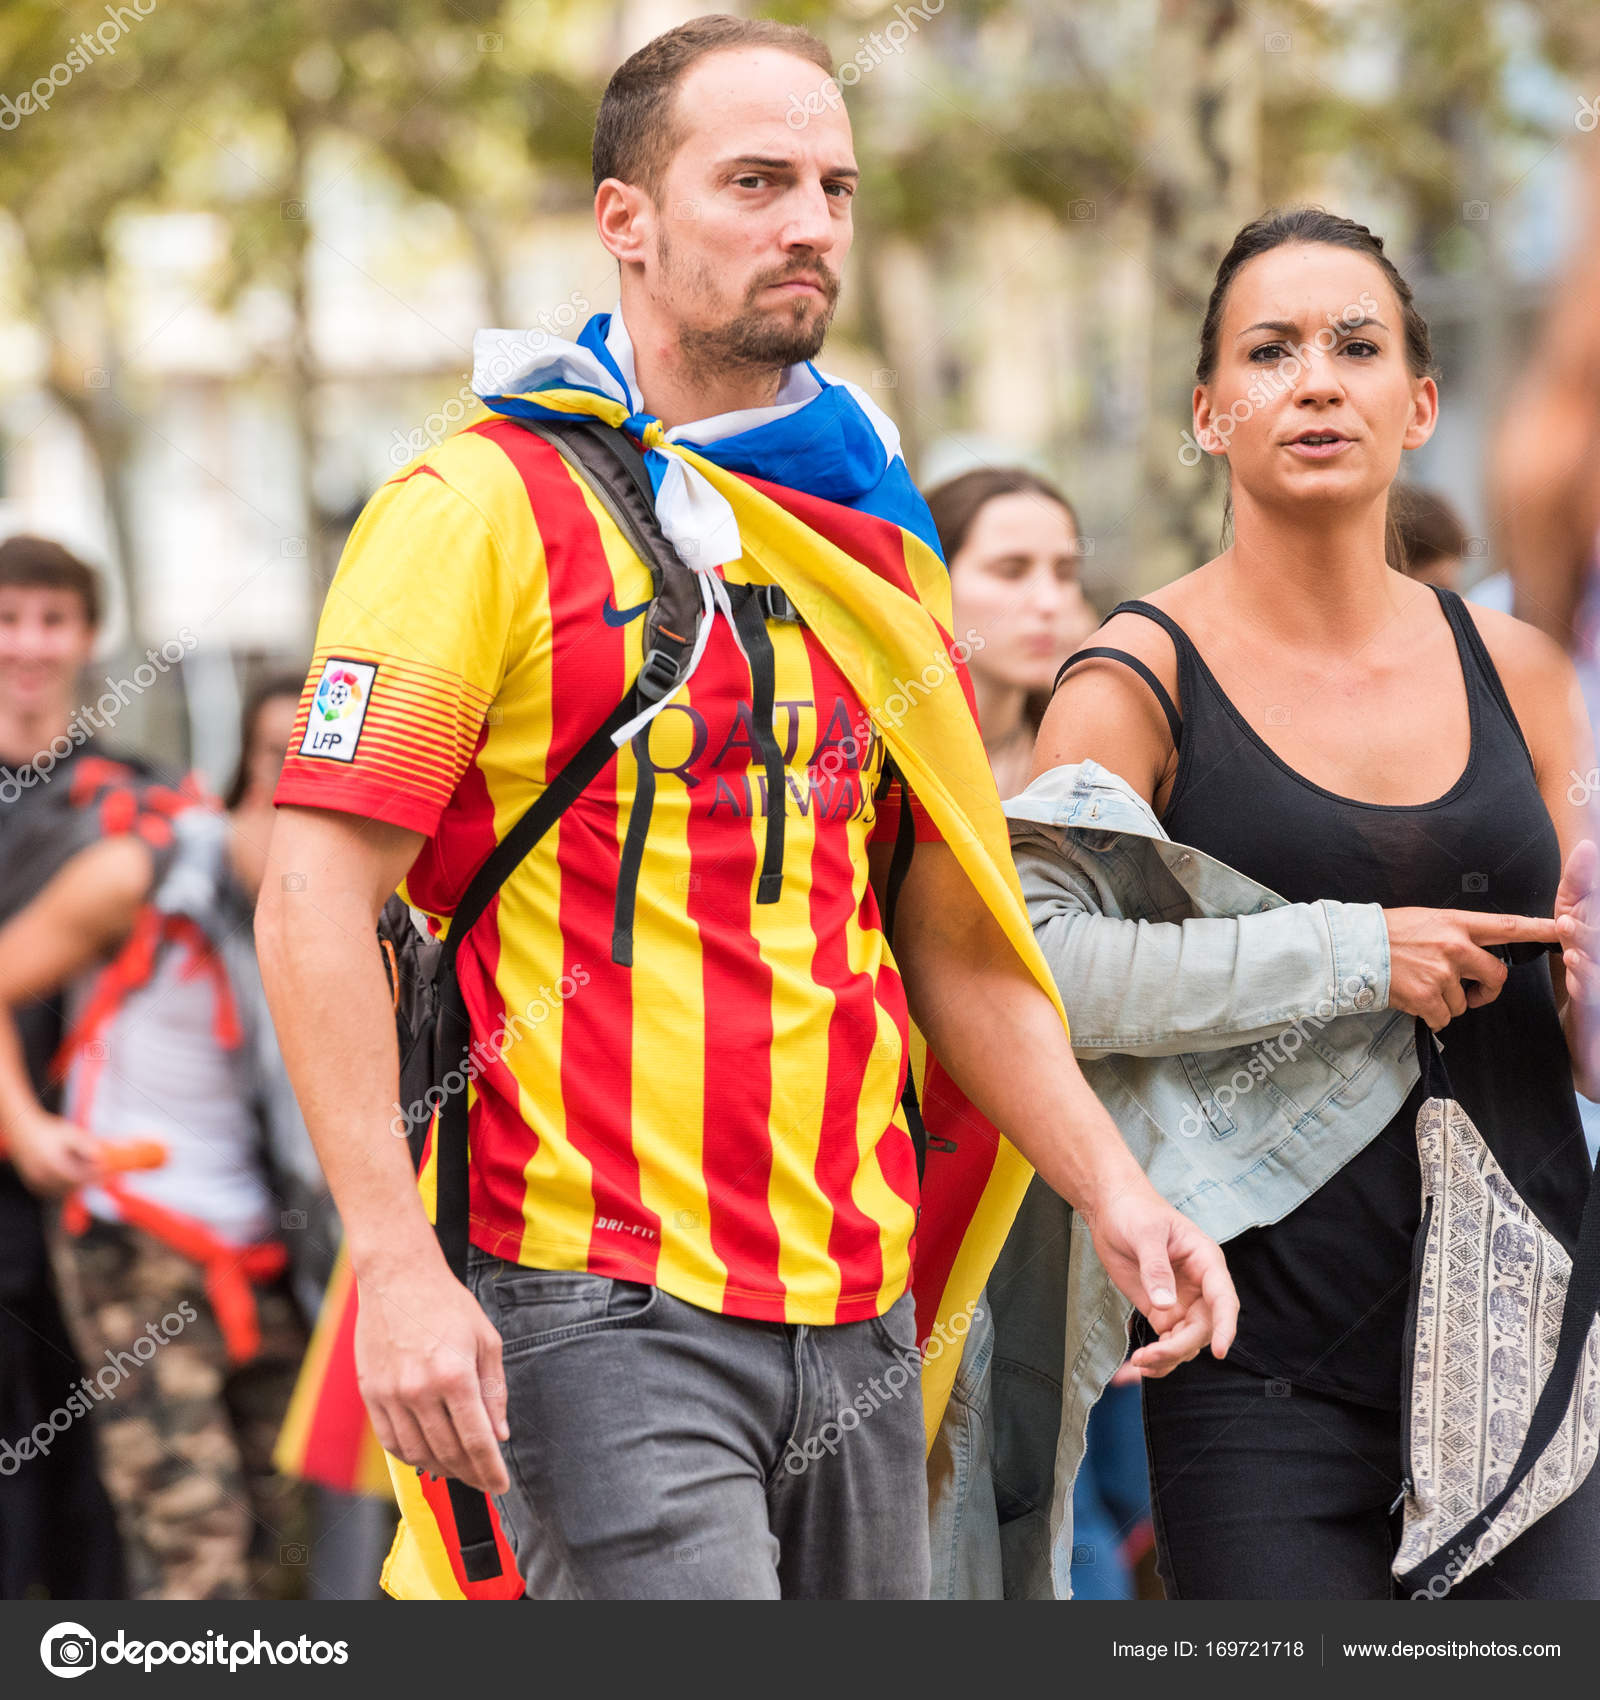 Barcelona Spain October 3 2017 People Demonstration For Catalonia Independence In Barcelona City Centre Close Up Stock Editorial Photo C Ggfoto 169721718